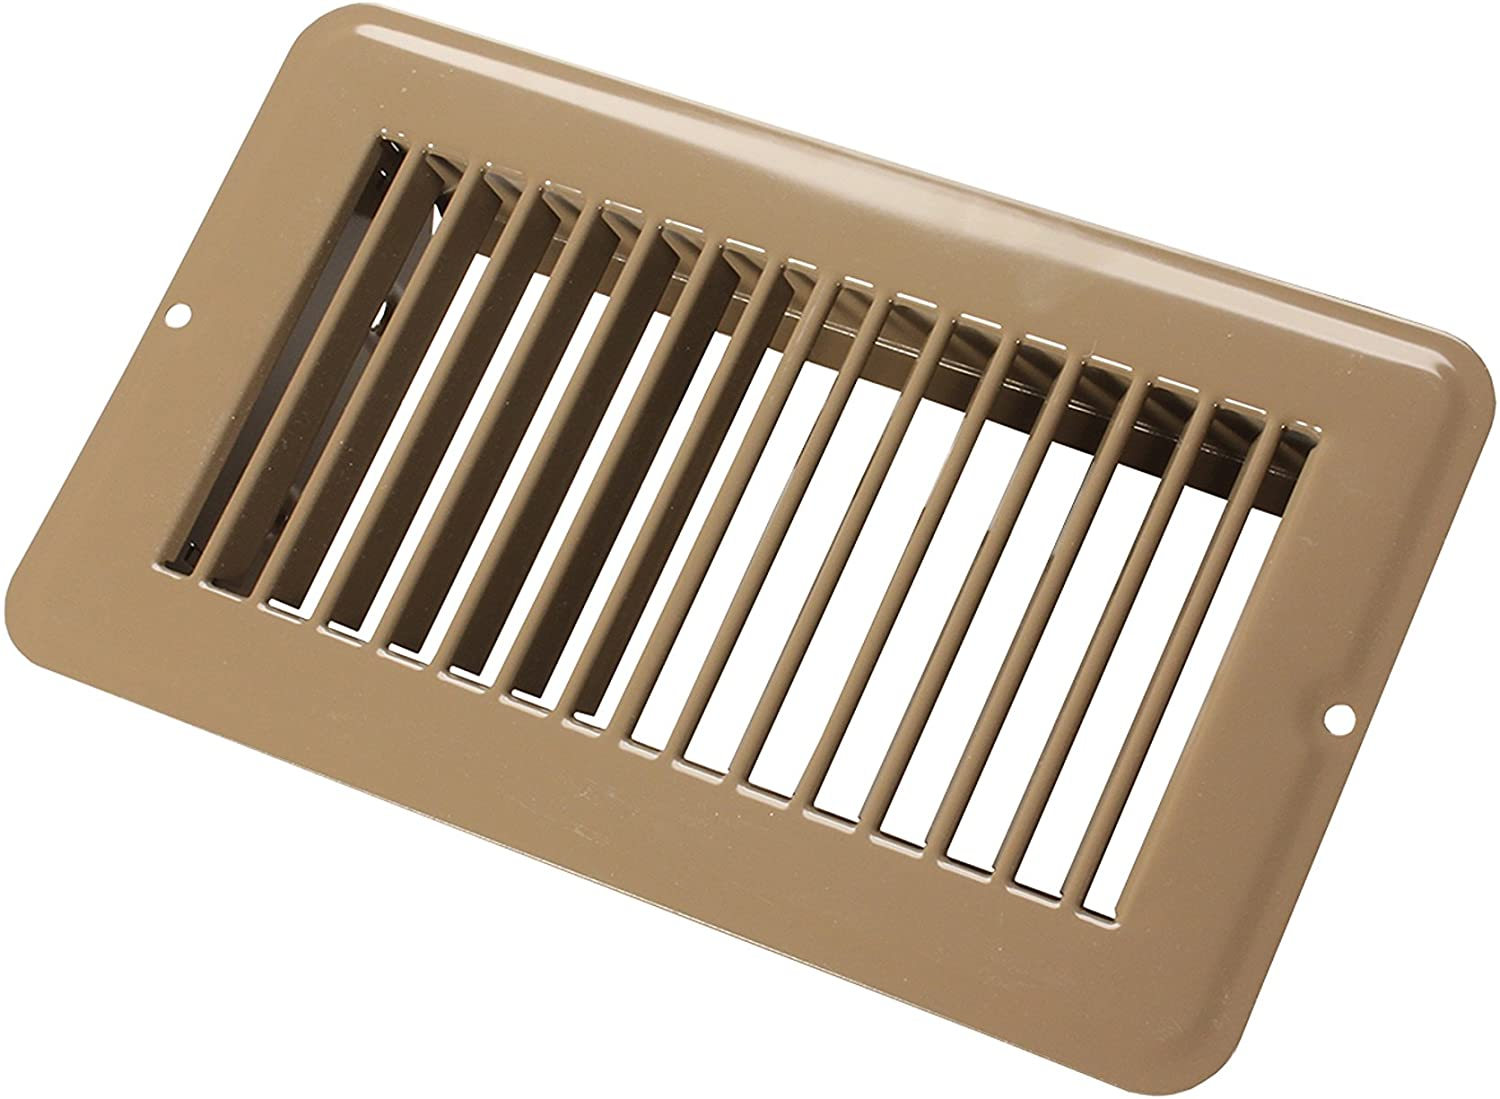 "JR Products 02-28955 Undampered Floor Register - 4"" x 8"", Brown"